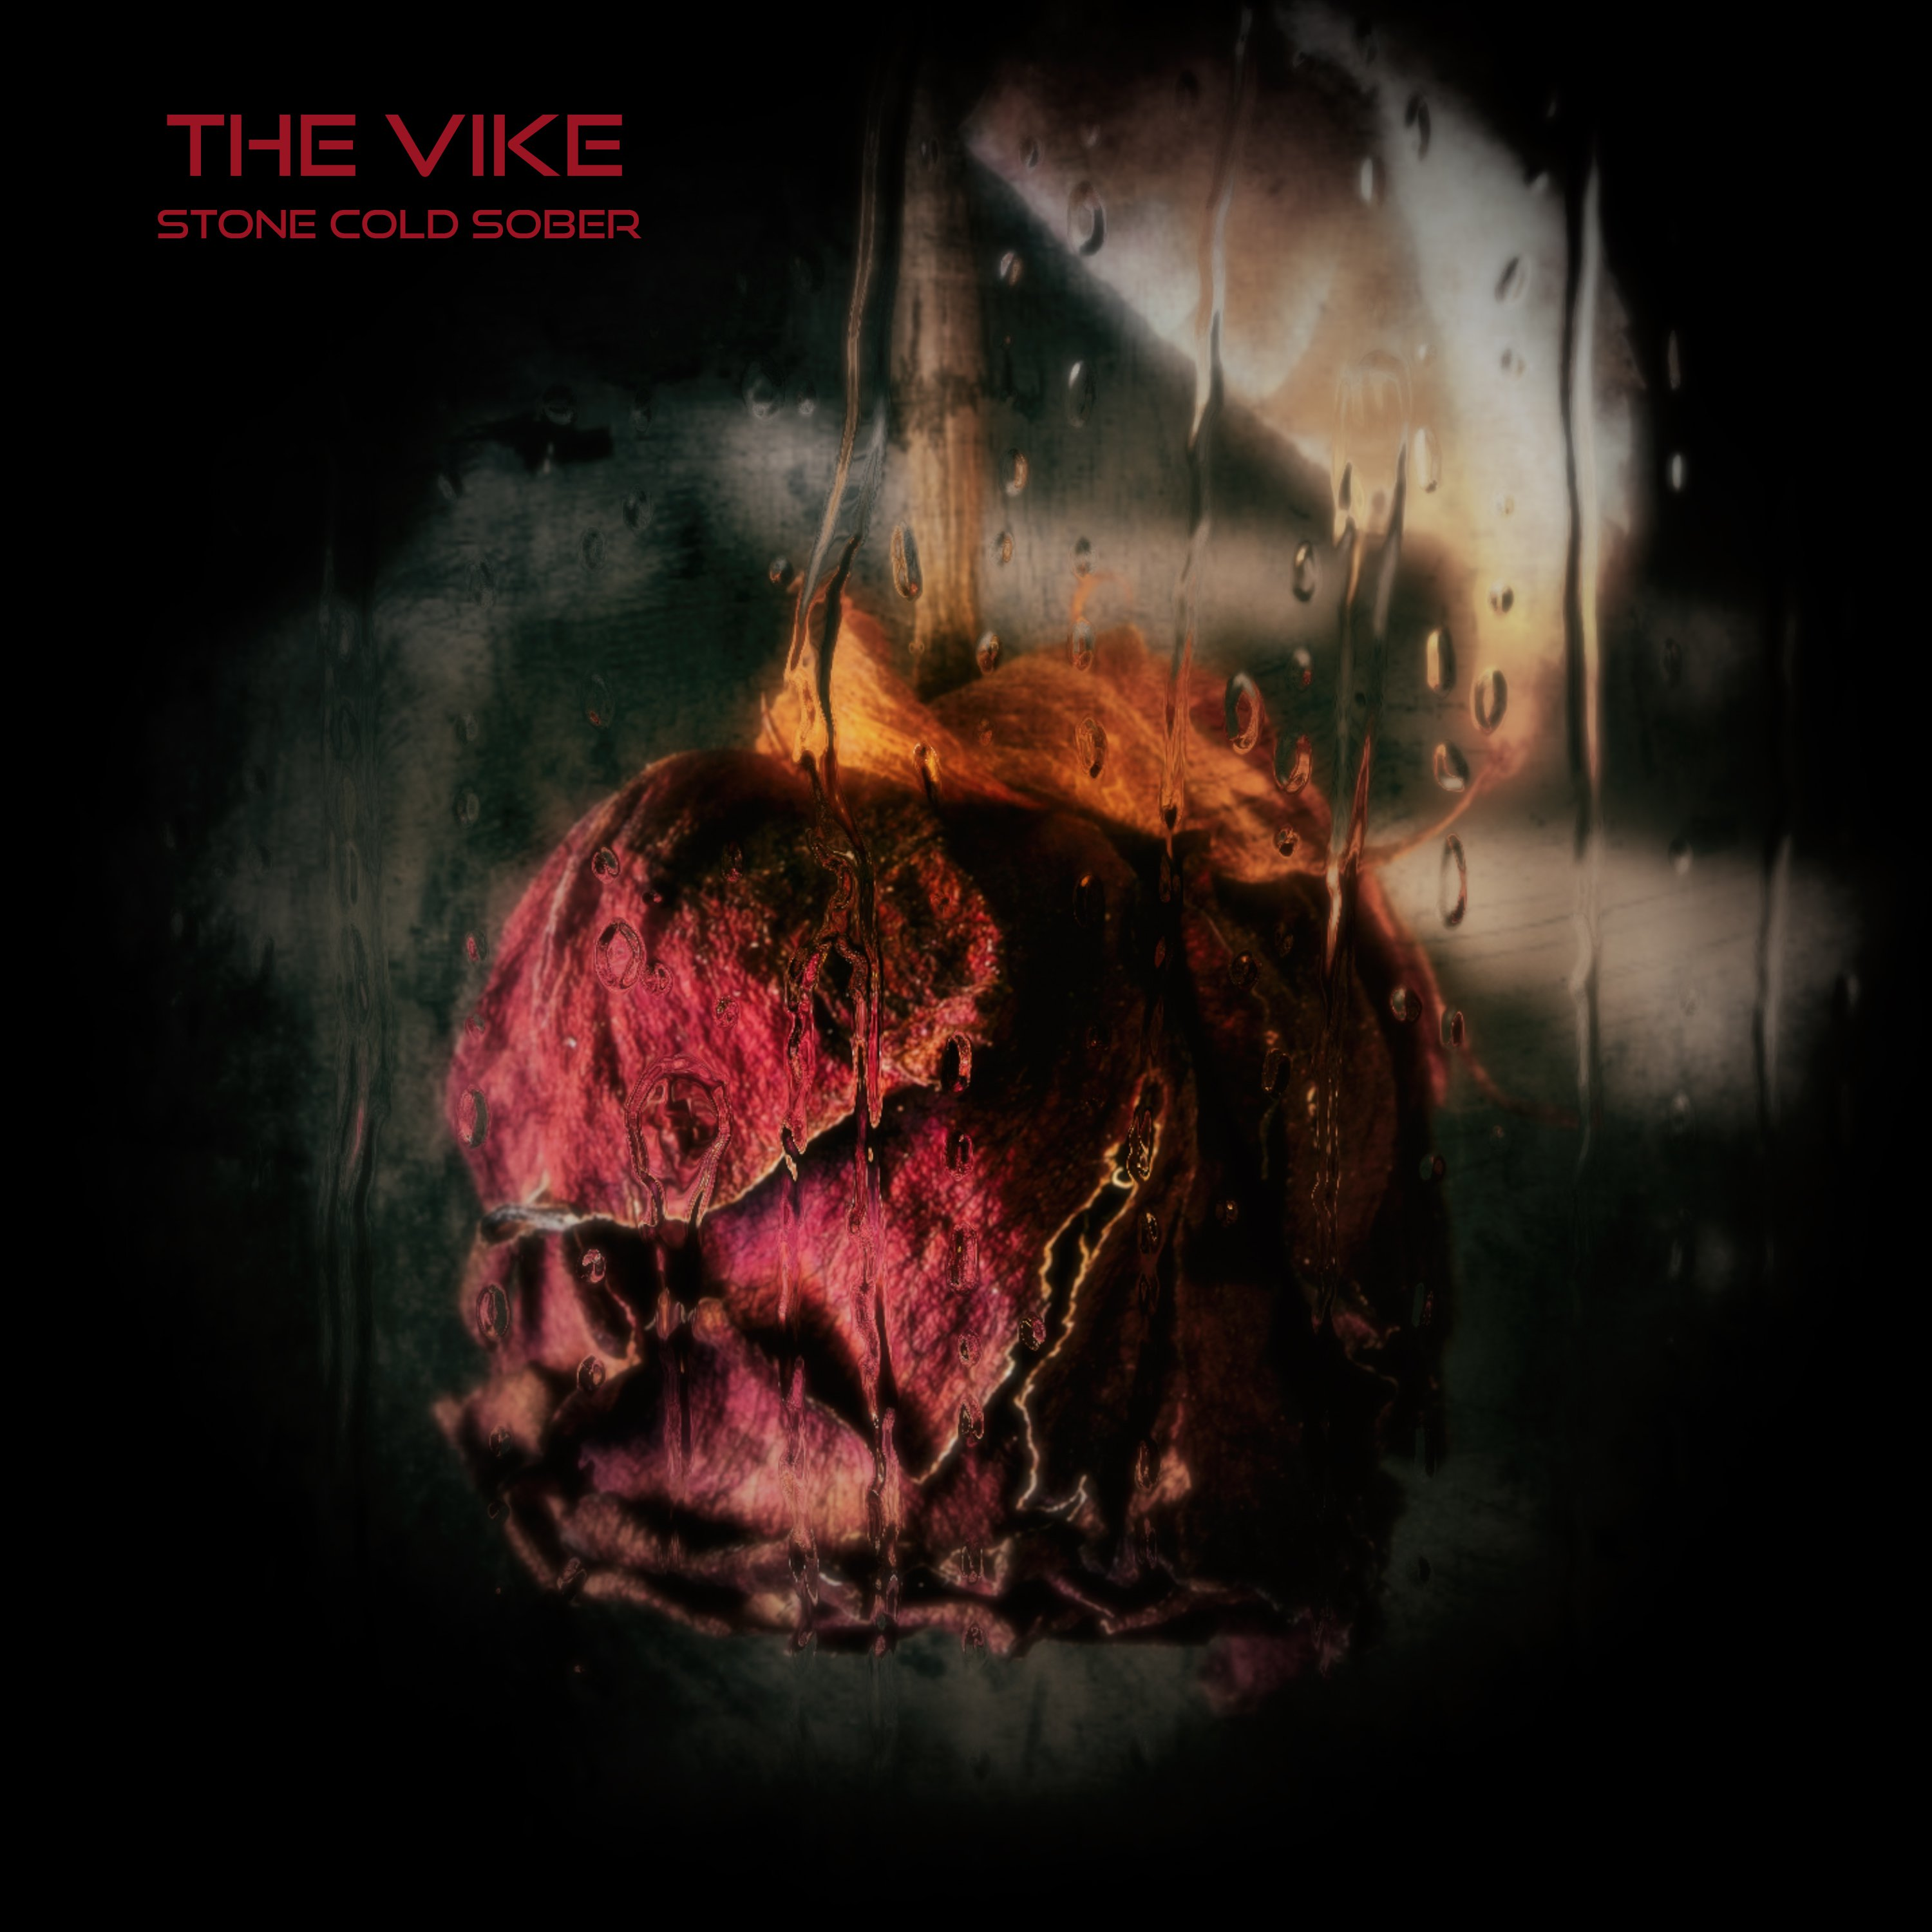 The Vike – Stone Cold Sober